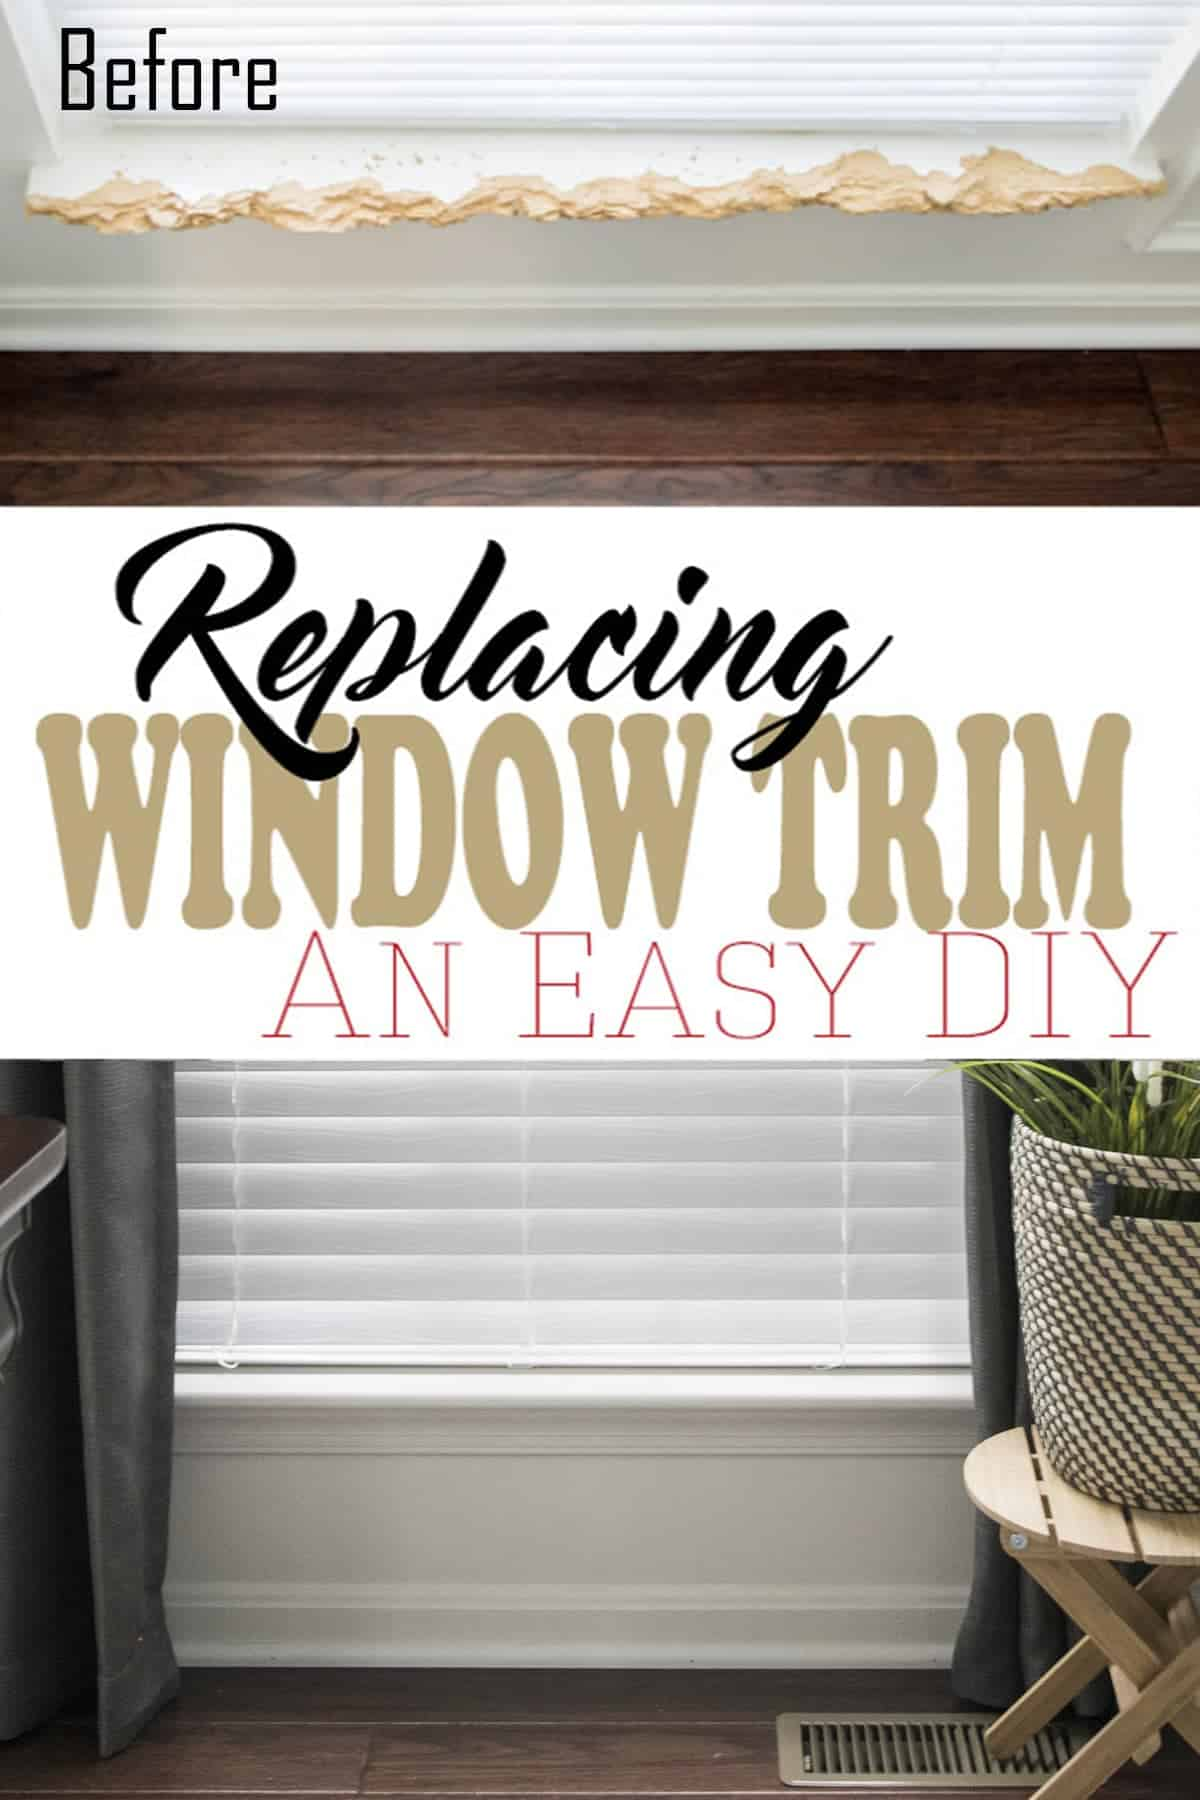 Crisp Window Trim And Sills Make A Wall Paint Shine As Well As Curtains.  Repairing